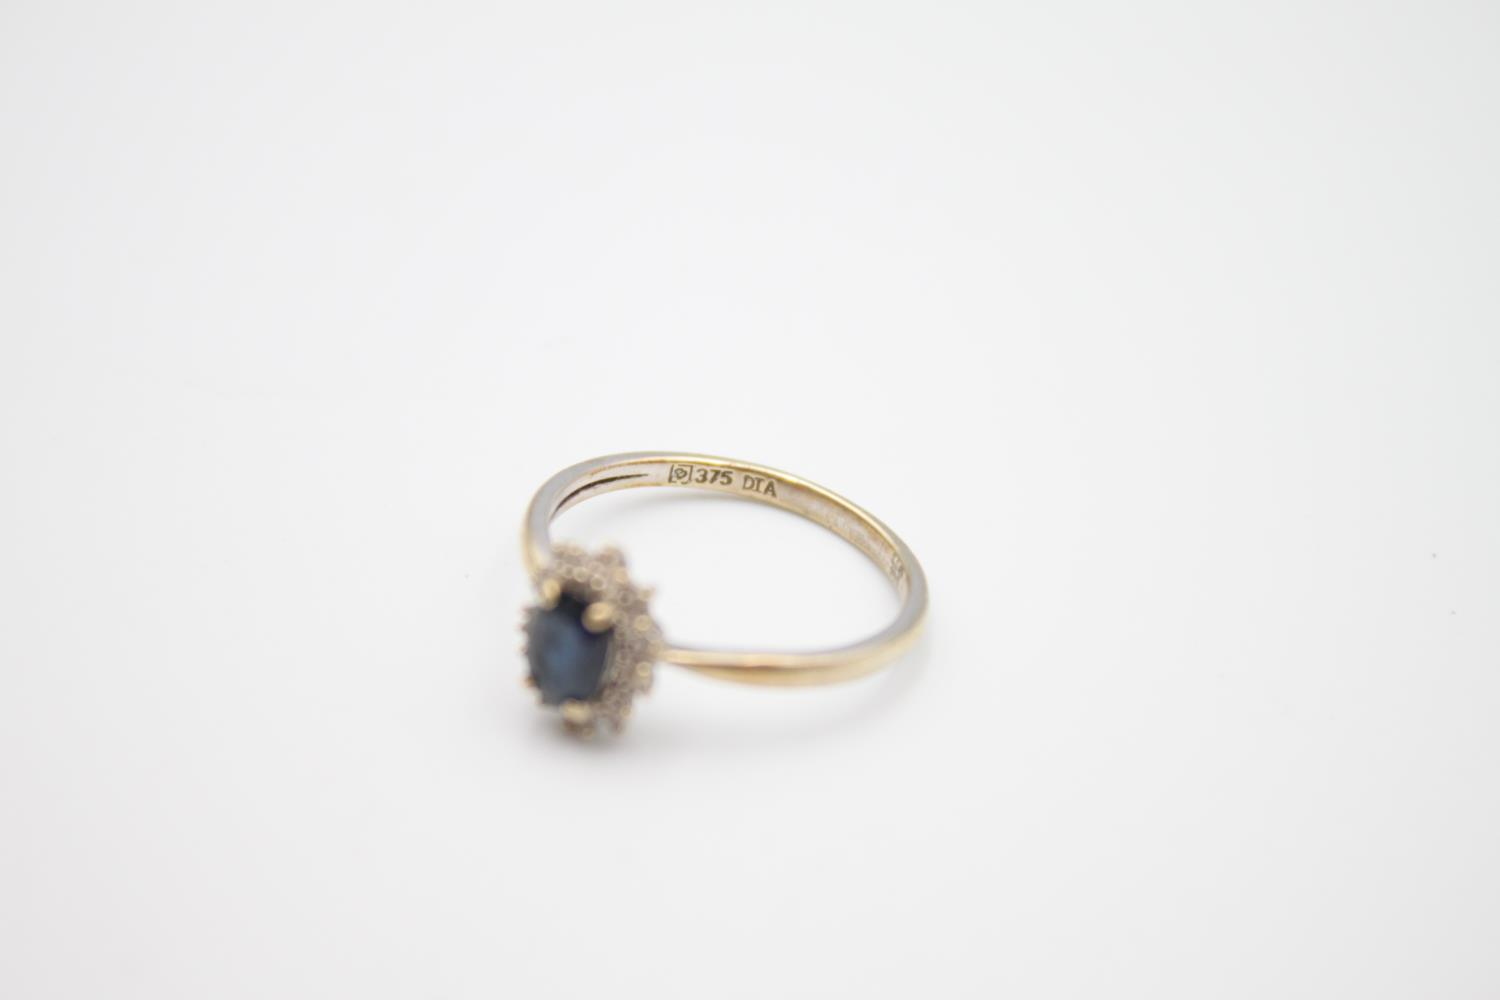 vintage 9ct gold sapphire & diamond halo ring 1.7g Size M - Image 2 of 5